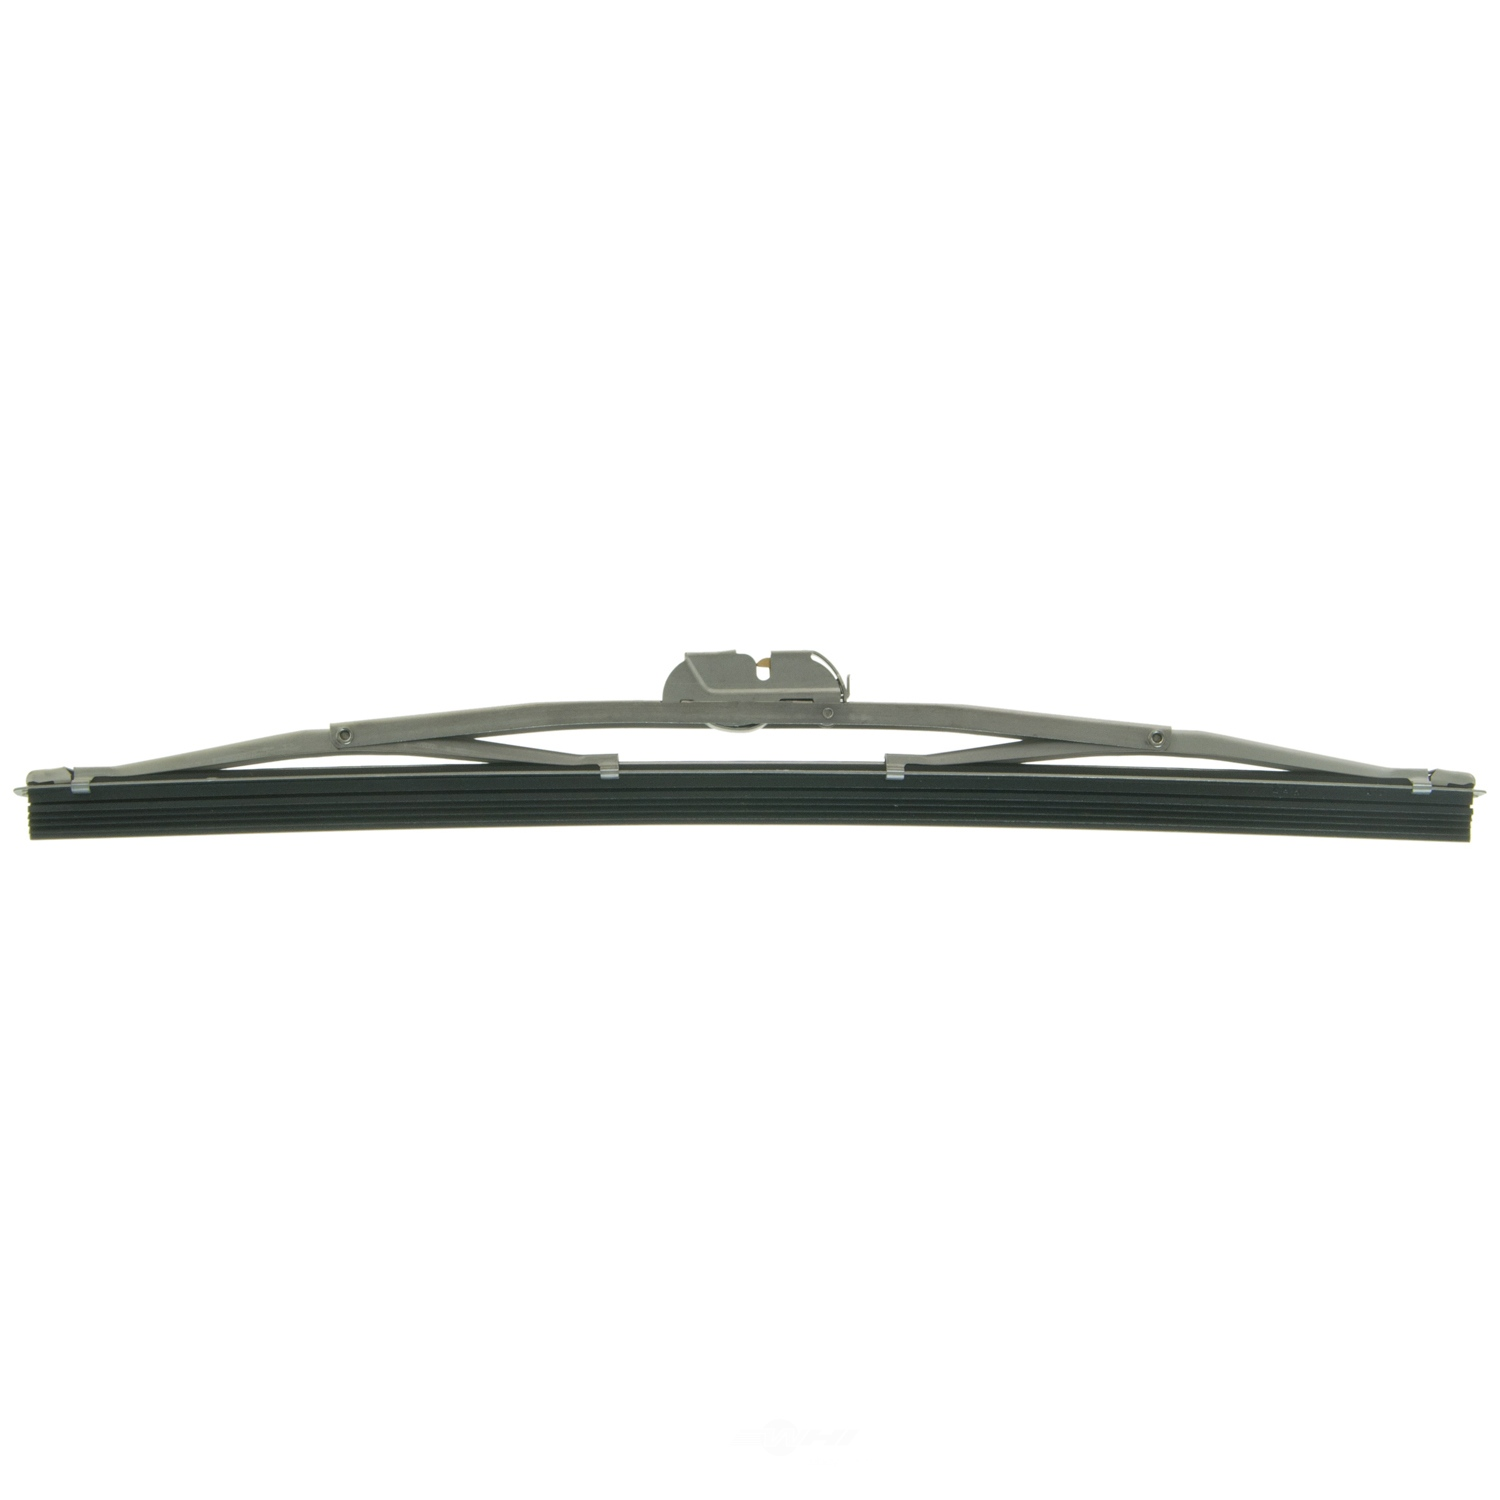 ANCO WIPER PRODUCTS - Vintage Wiper Blade - ANC 20-09